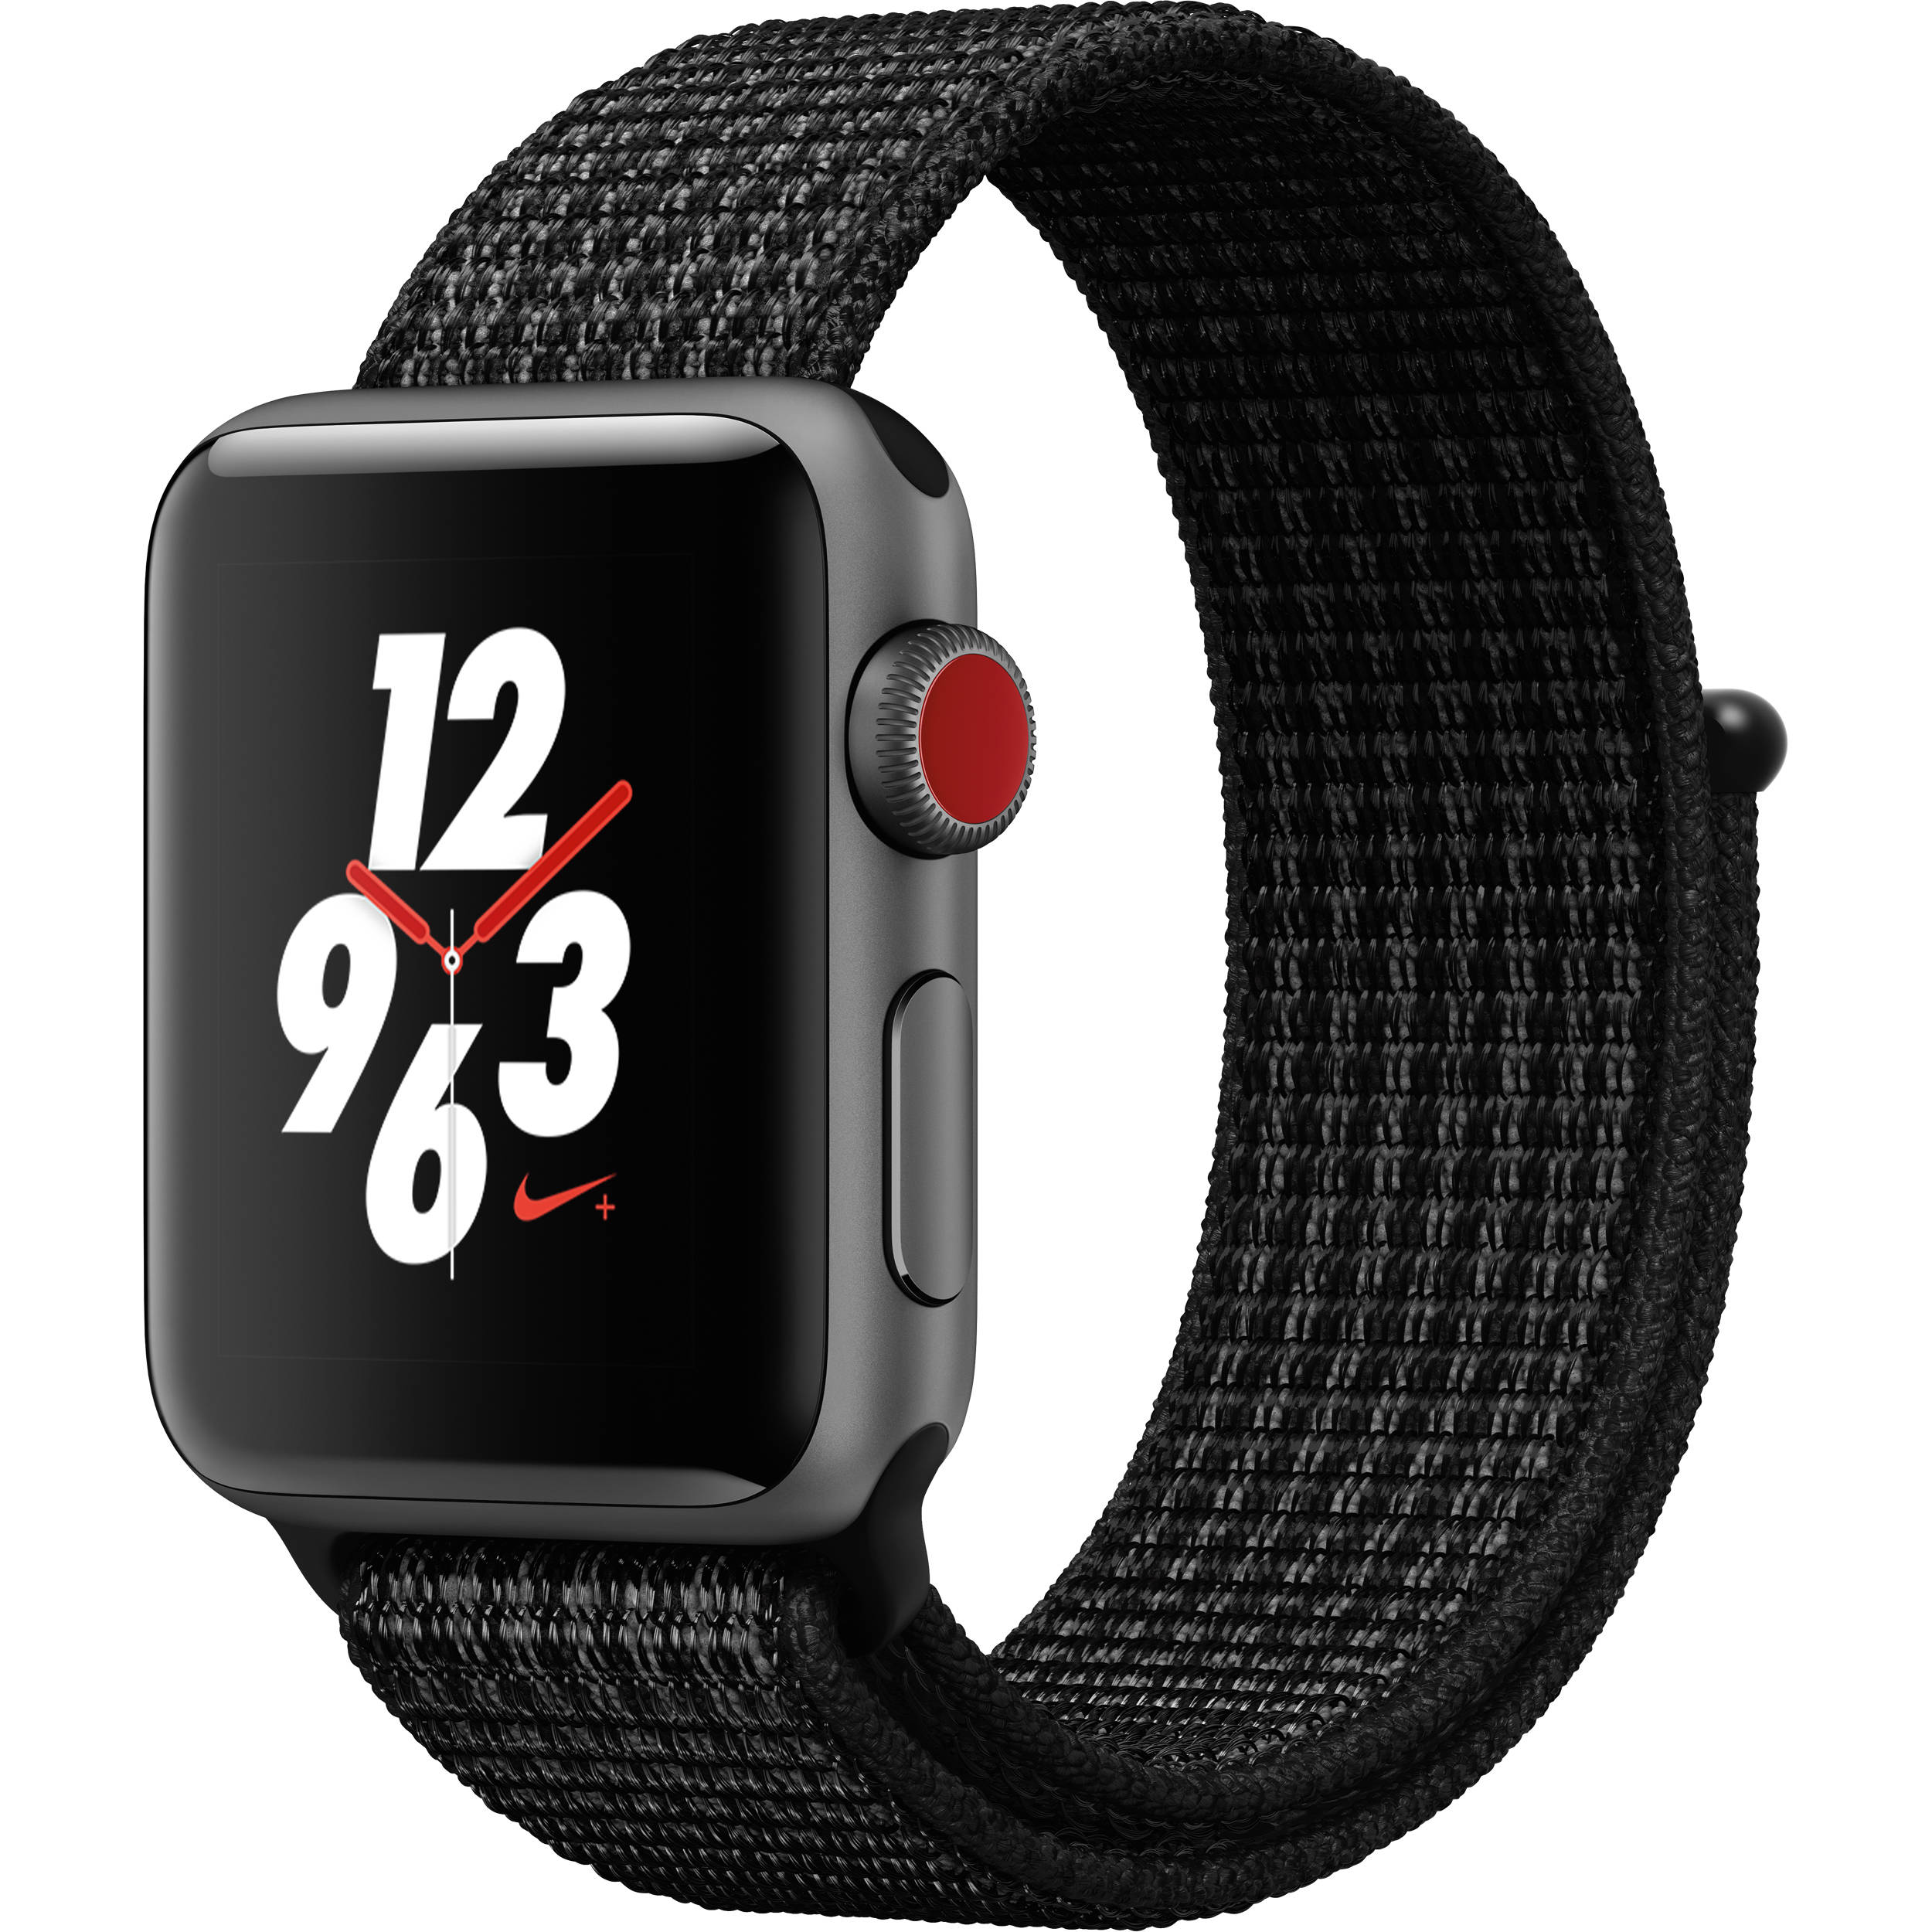 Apple Watch Nike+ Series 3 38mm Smartwatch (GPS + Cellular, Space Gray  Aluminum Case, Black/Pure Platinum Nike Sport Loop)